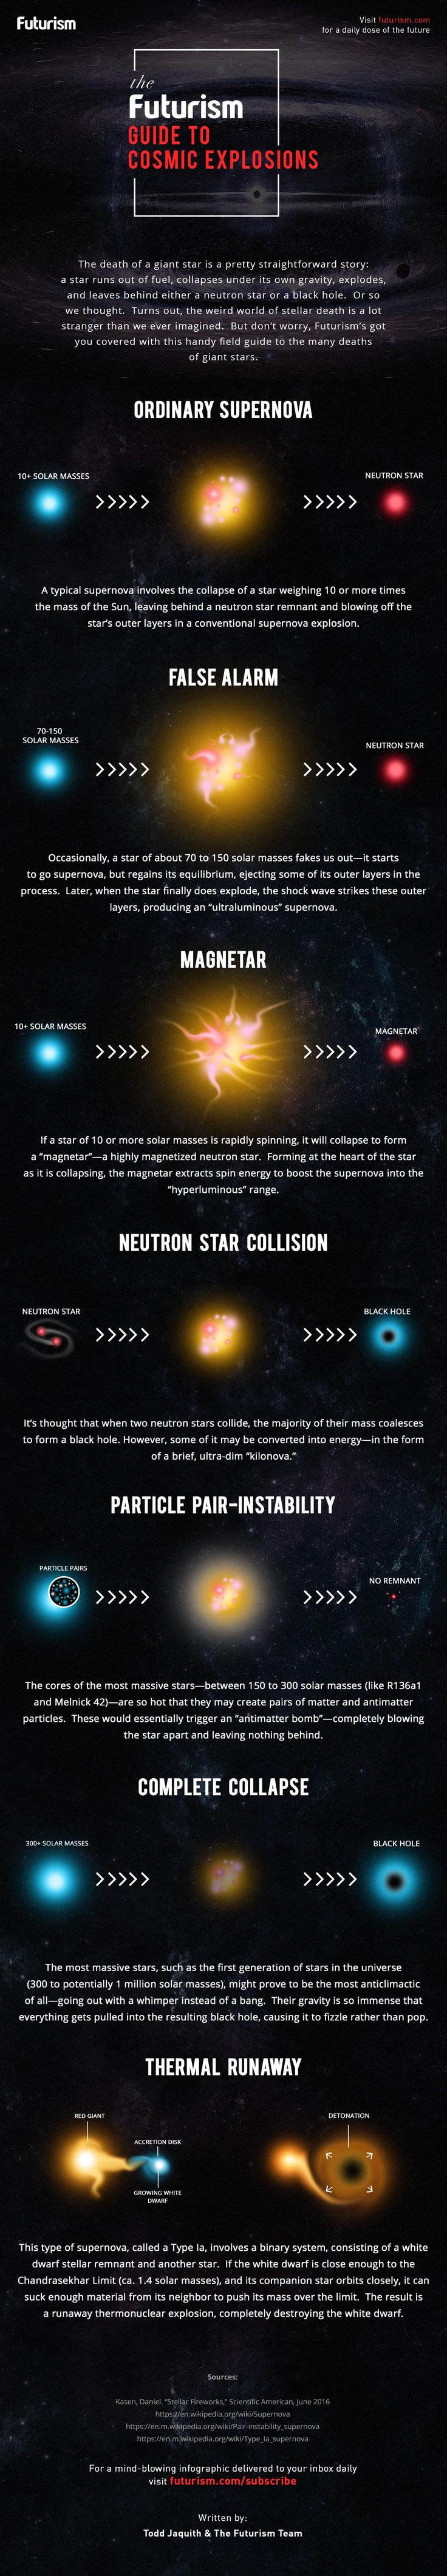 A look at all the different ways a star can die—from neutron star collisions to ordinary supernovae, and everything in between.  http://futurism.com/images/the-futurism-guide-to-cosmic-explosions-infographic/?utm_campaign=coschedule&utm_source=pinterest&utm_medium=Futurism&utm_content=The%20Futurism%20Guide%20To%20Cosmic%20Explosions%20%5BINFOGRAPHIC%5D